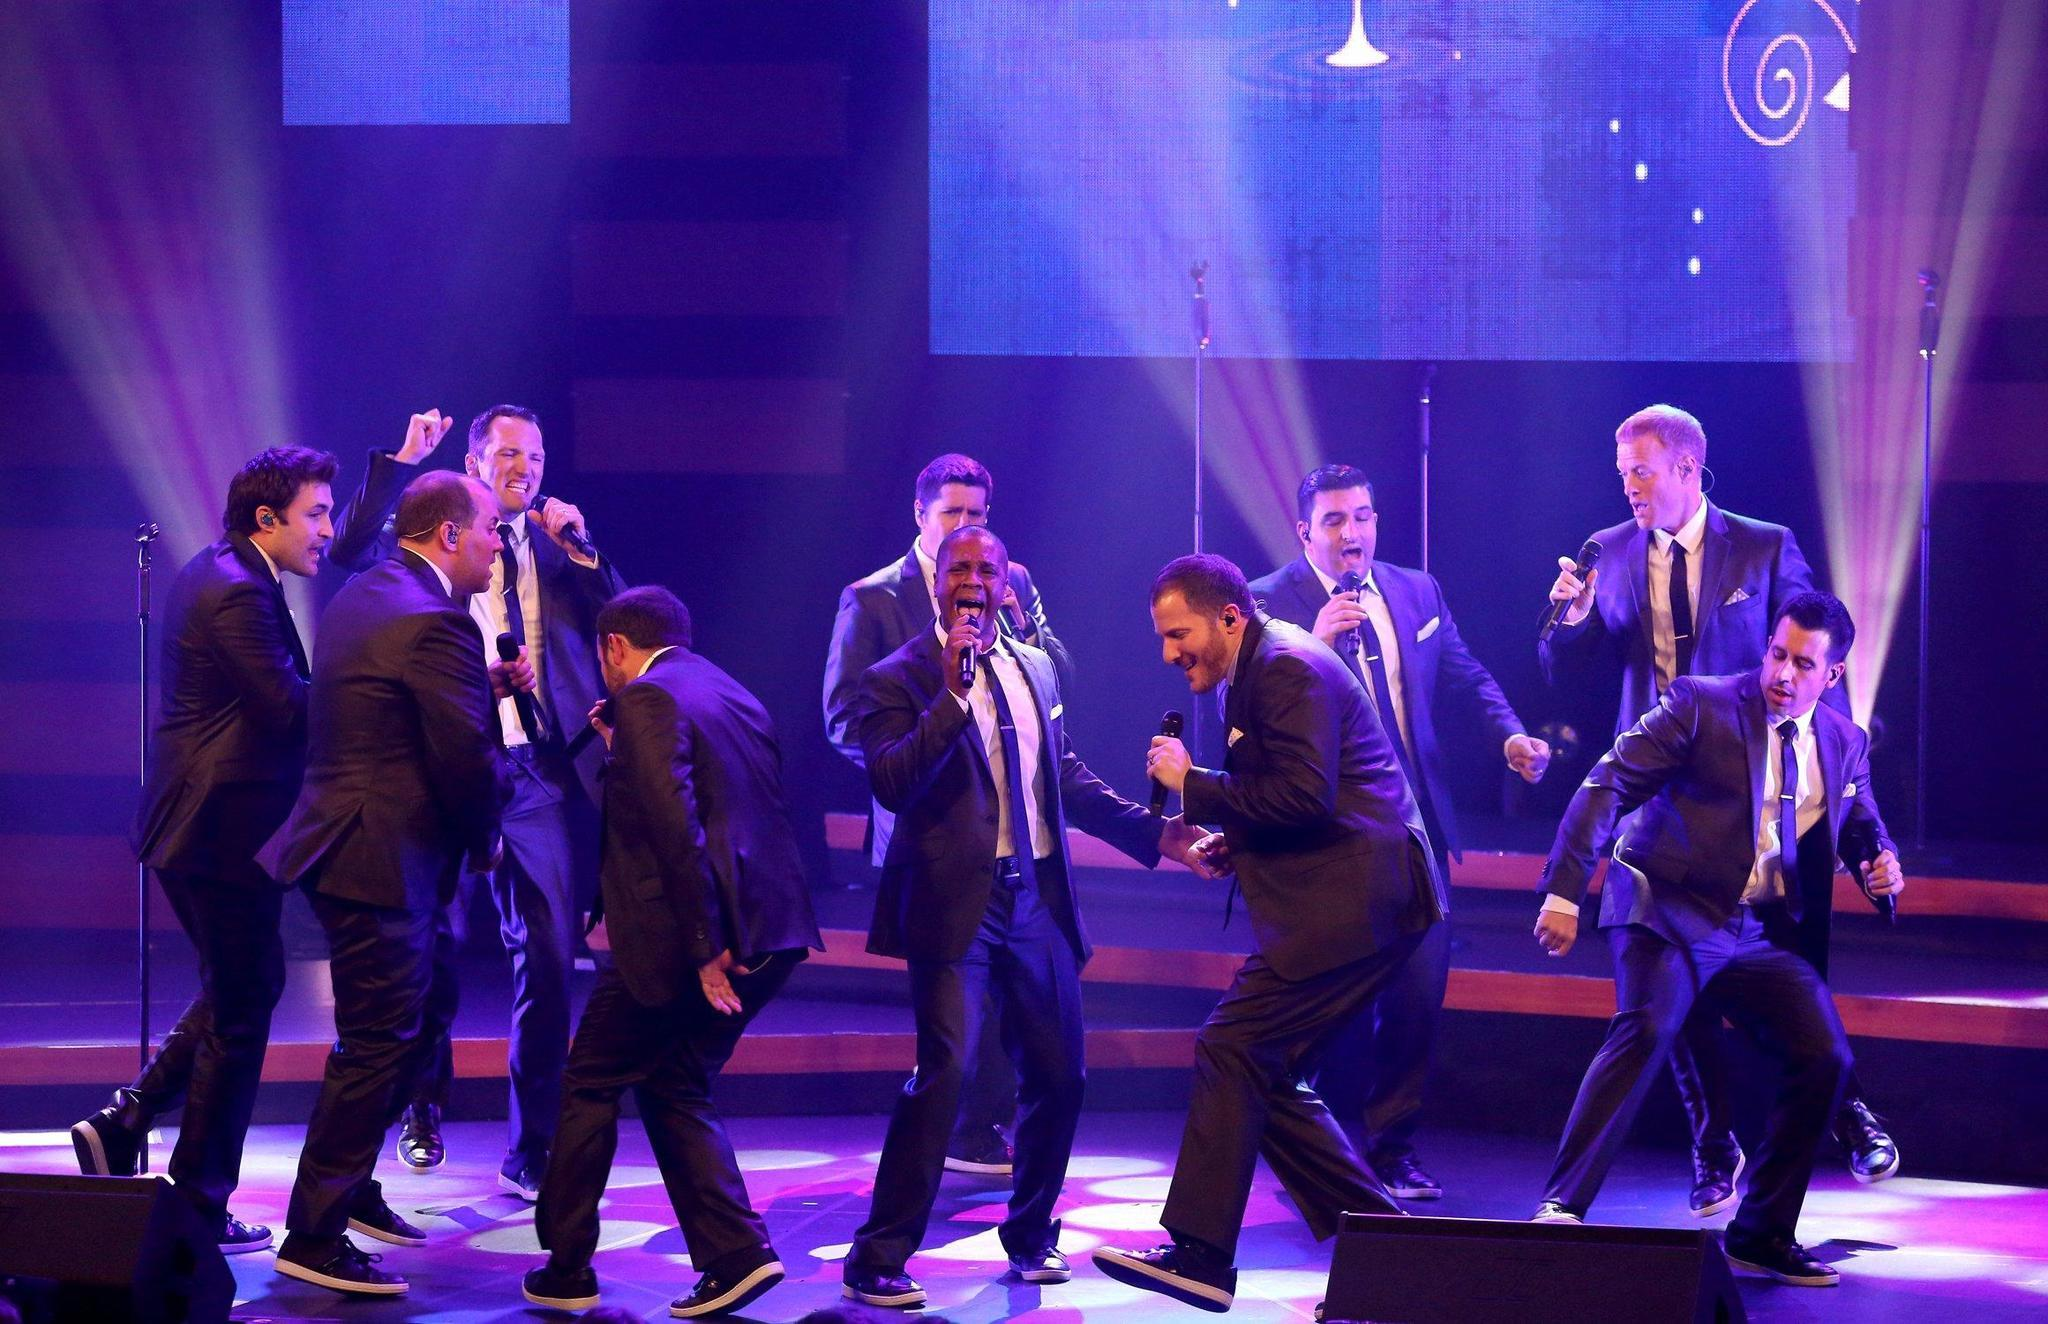 Straight No Chaser brings holiday cheer to Allentown - The Morning Call